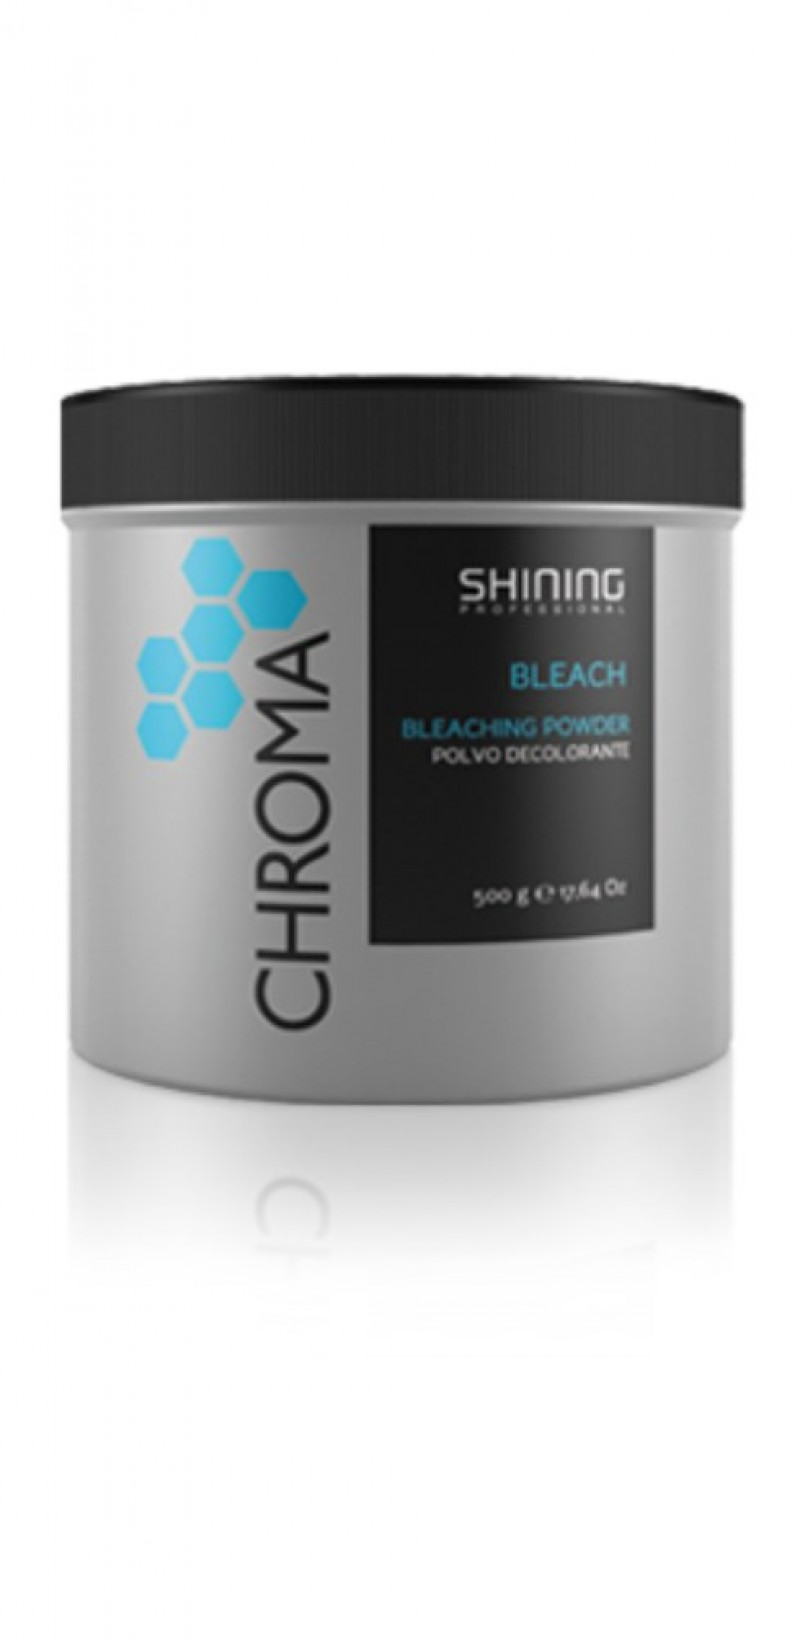 Decoloracion Shining Chroma Bleach 500grs